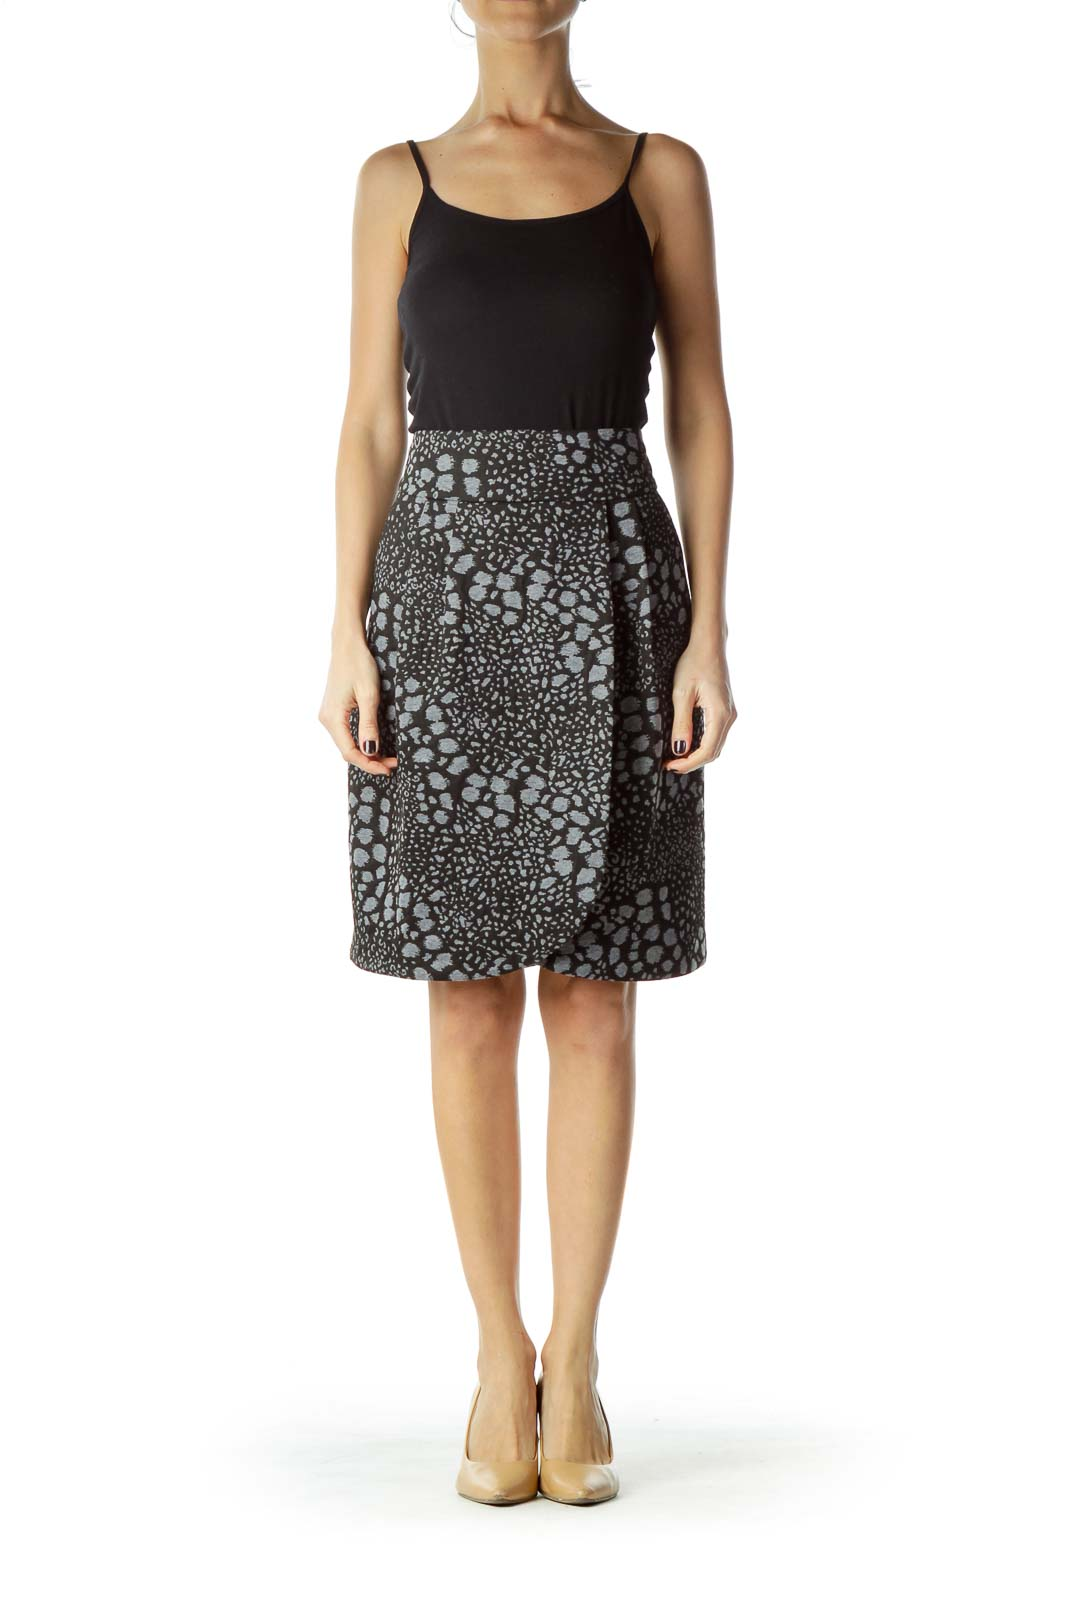 Gray Animal Print Skirt